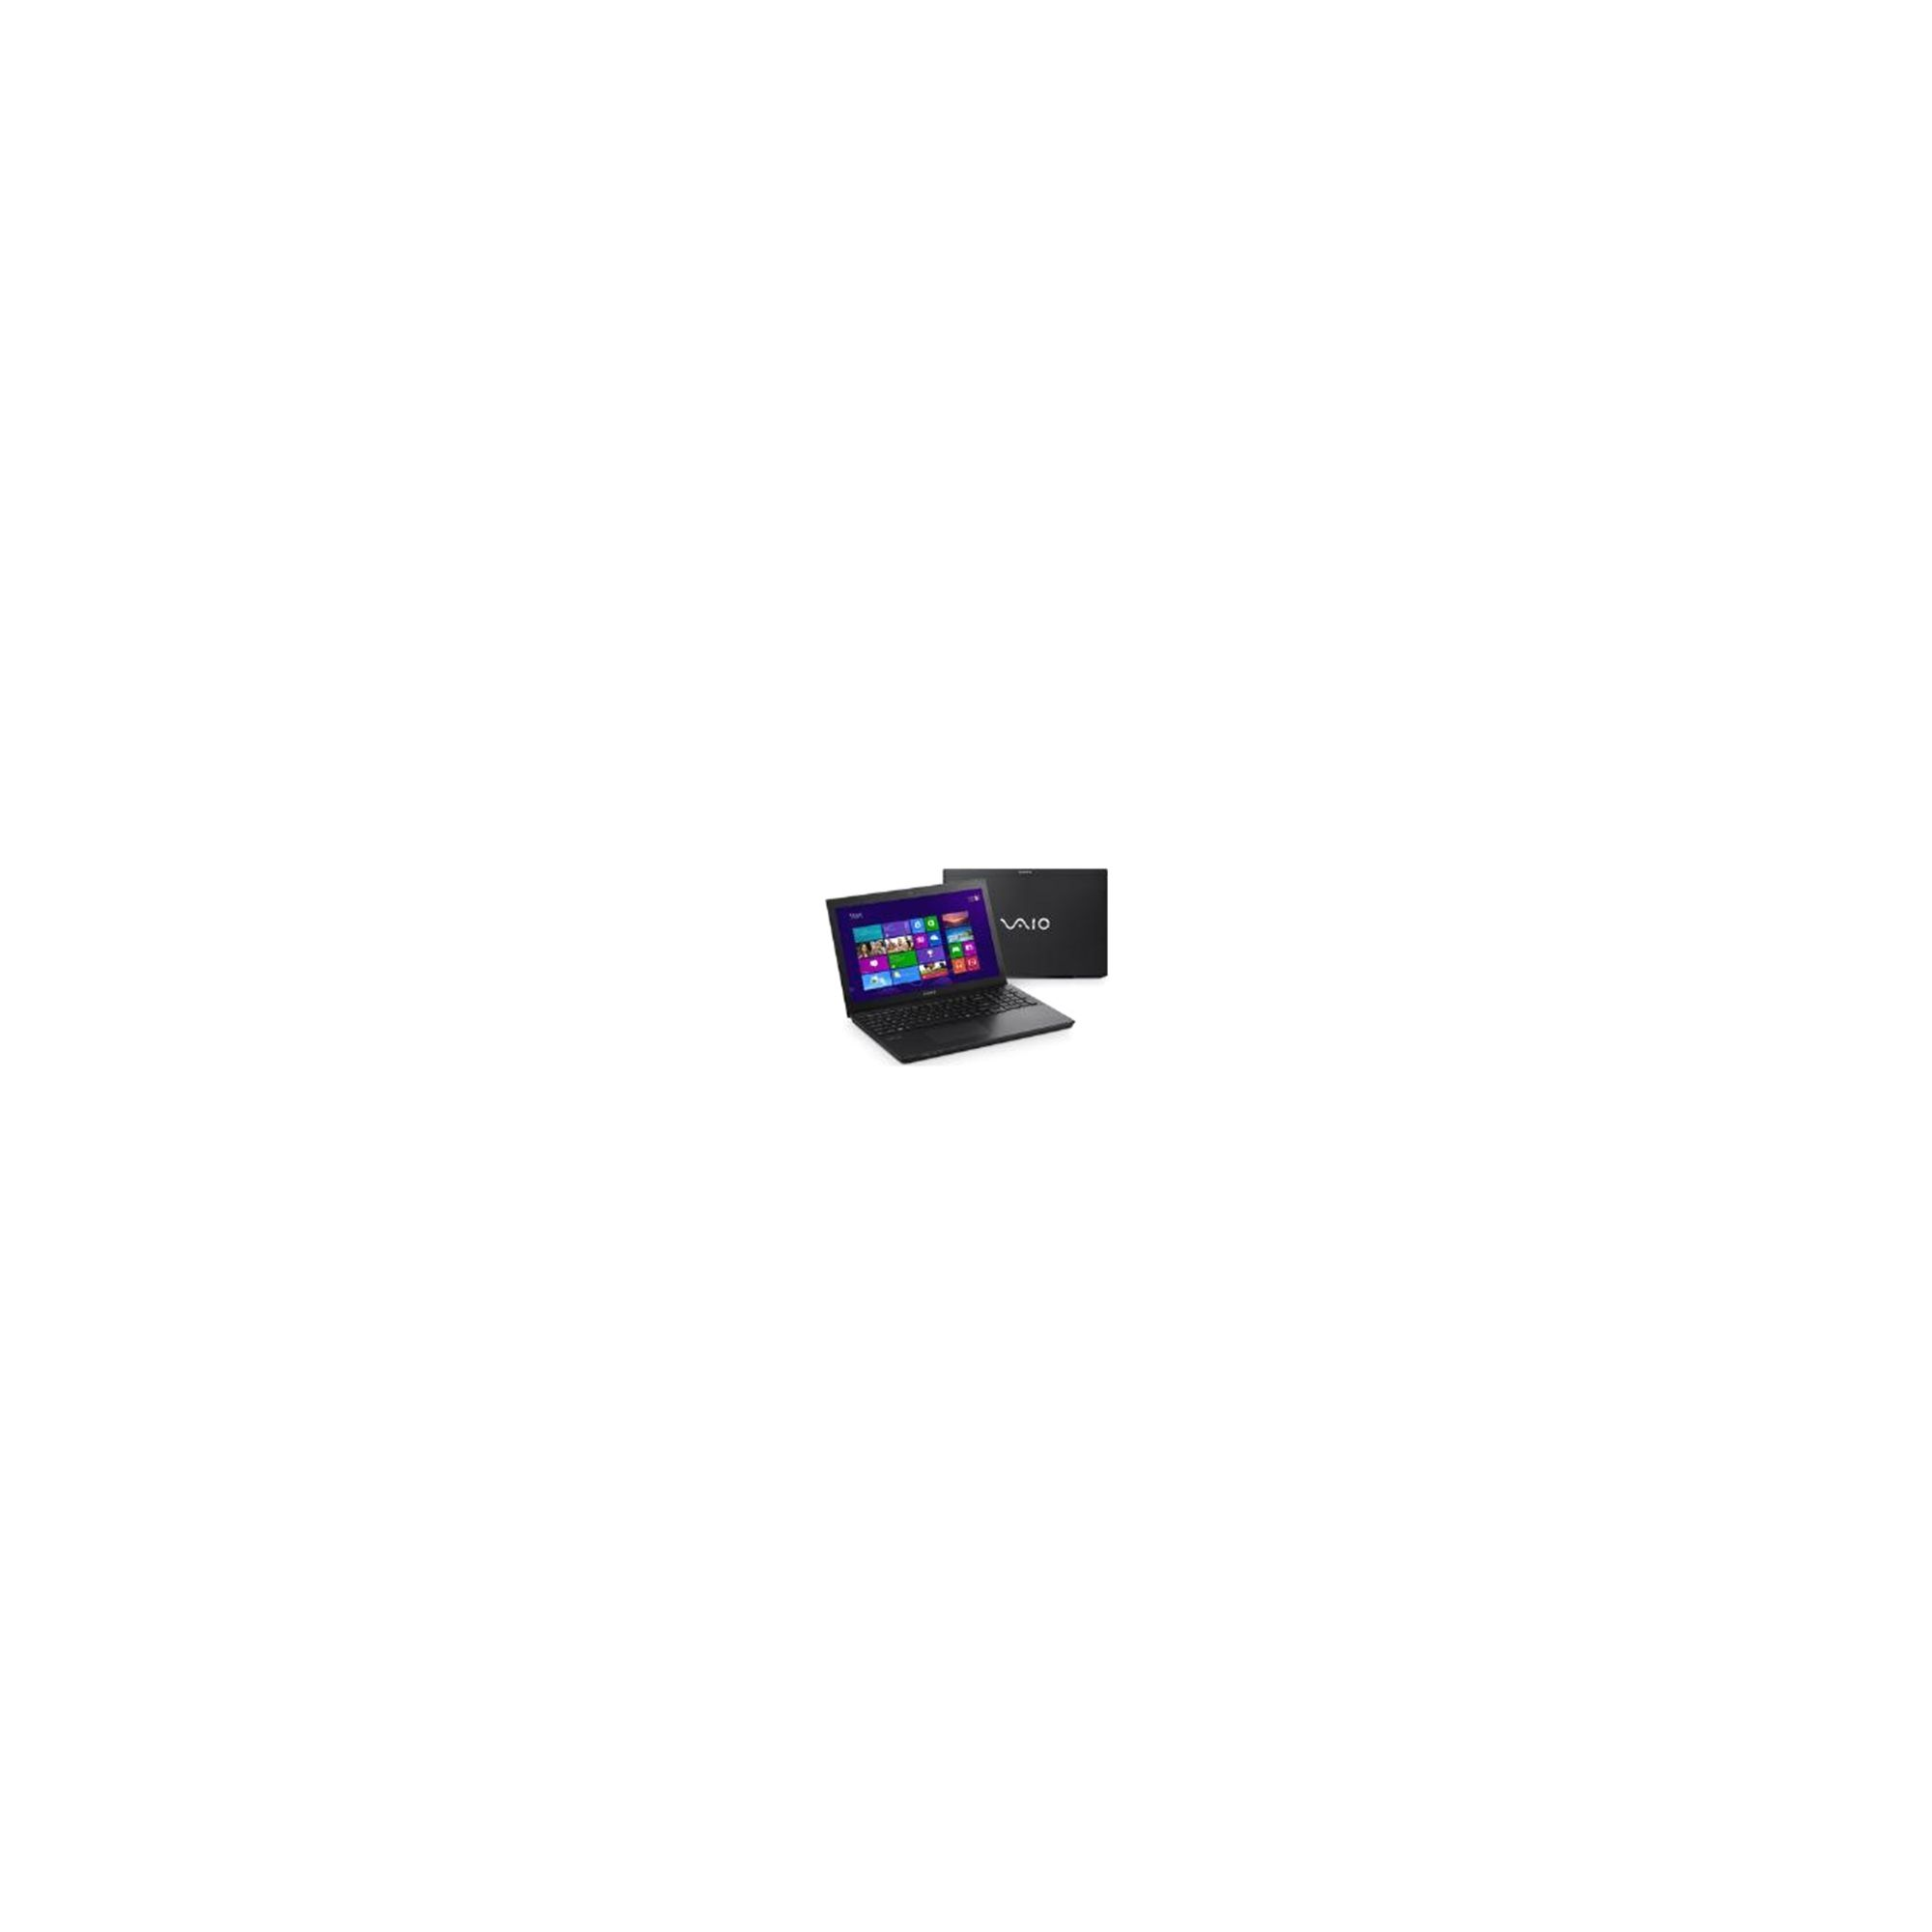 Sony Vaio SVS1512X9E (15.5 inch) Notebook Core i5 (3210M) 2.5GHz 6GB 640GB Windows 8 Pro (HD Graphics 4000 & GeForce GT 640M LE) at Tescos Direct